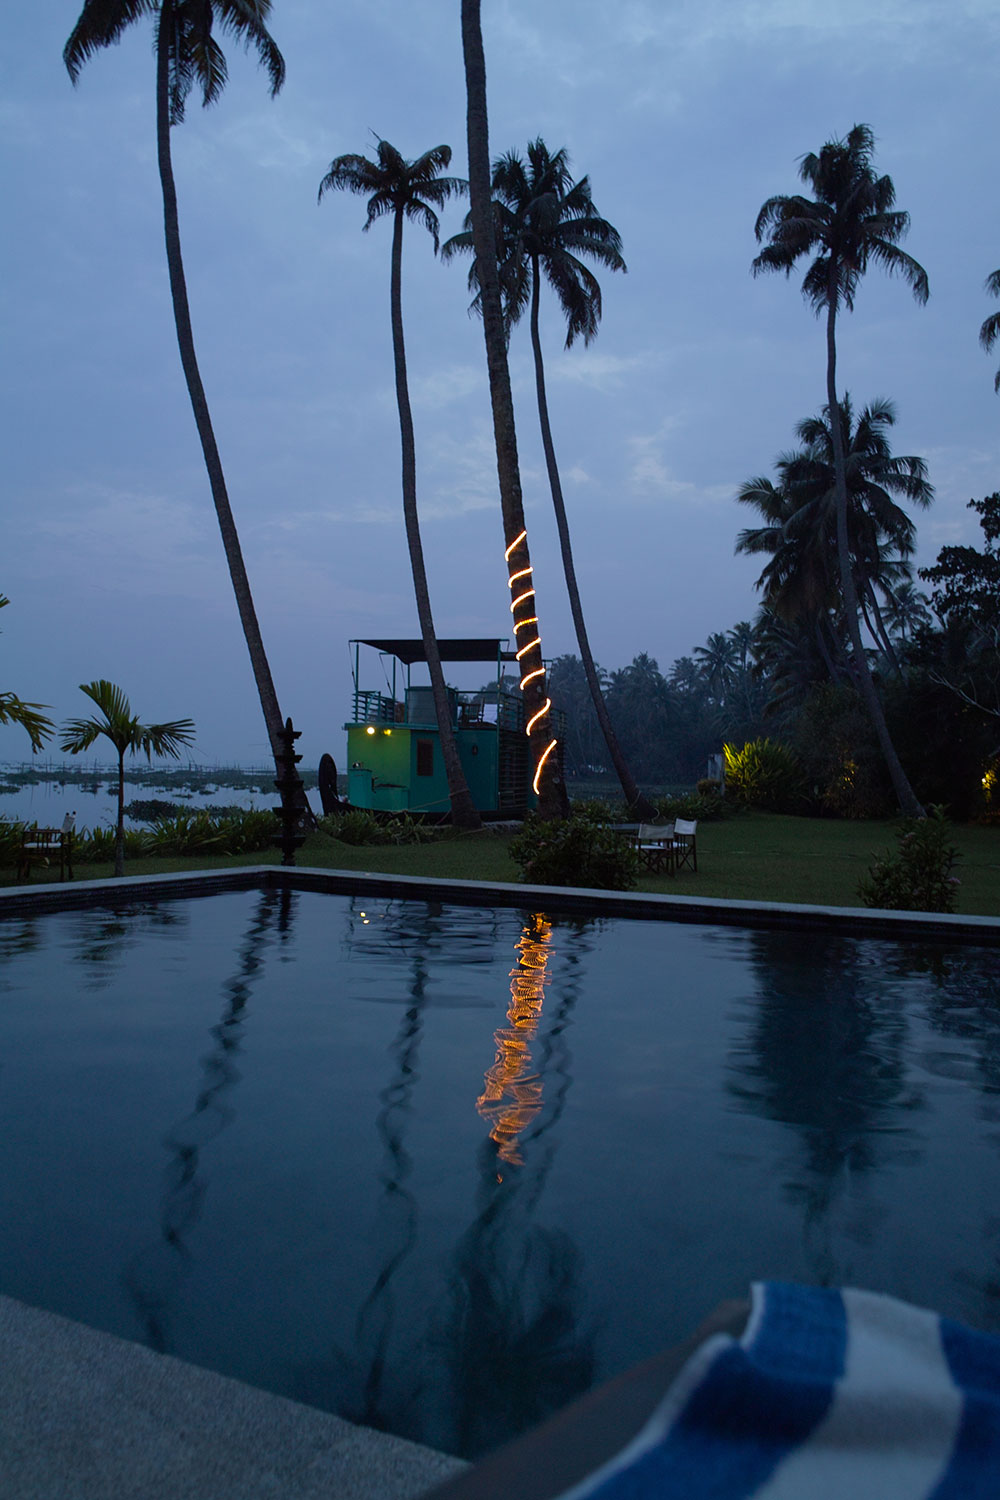 kerala_discovery_thevoyageur12